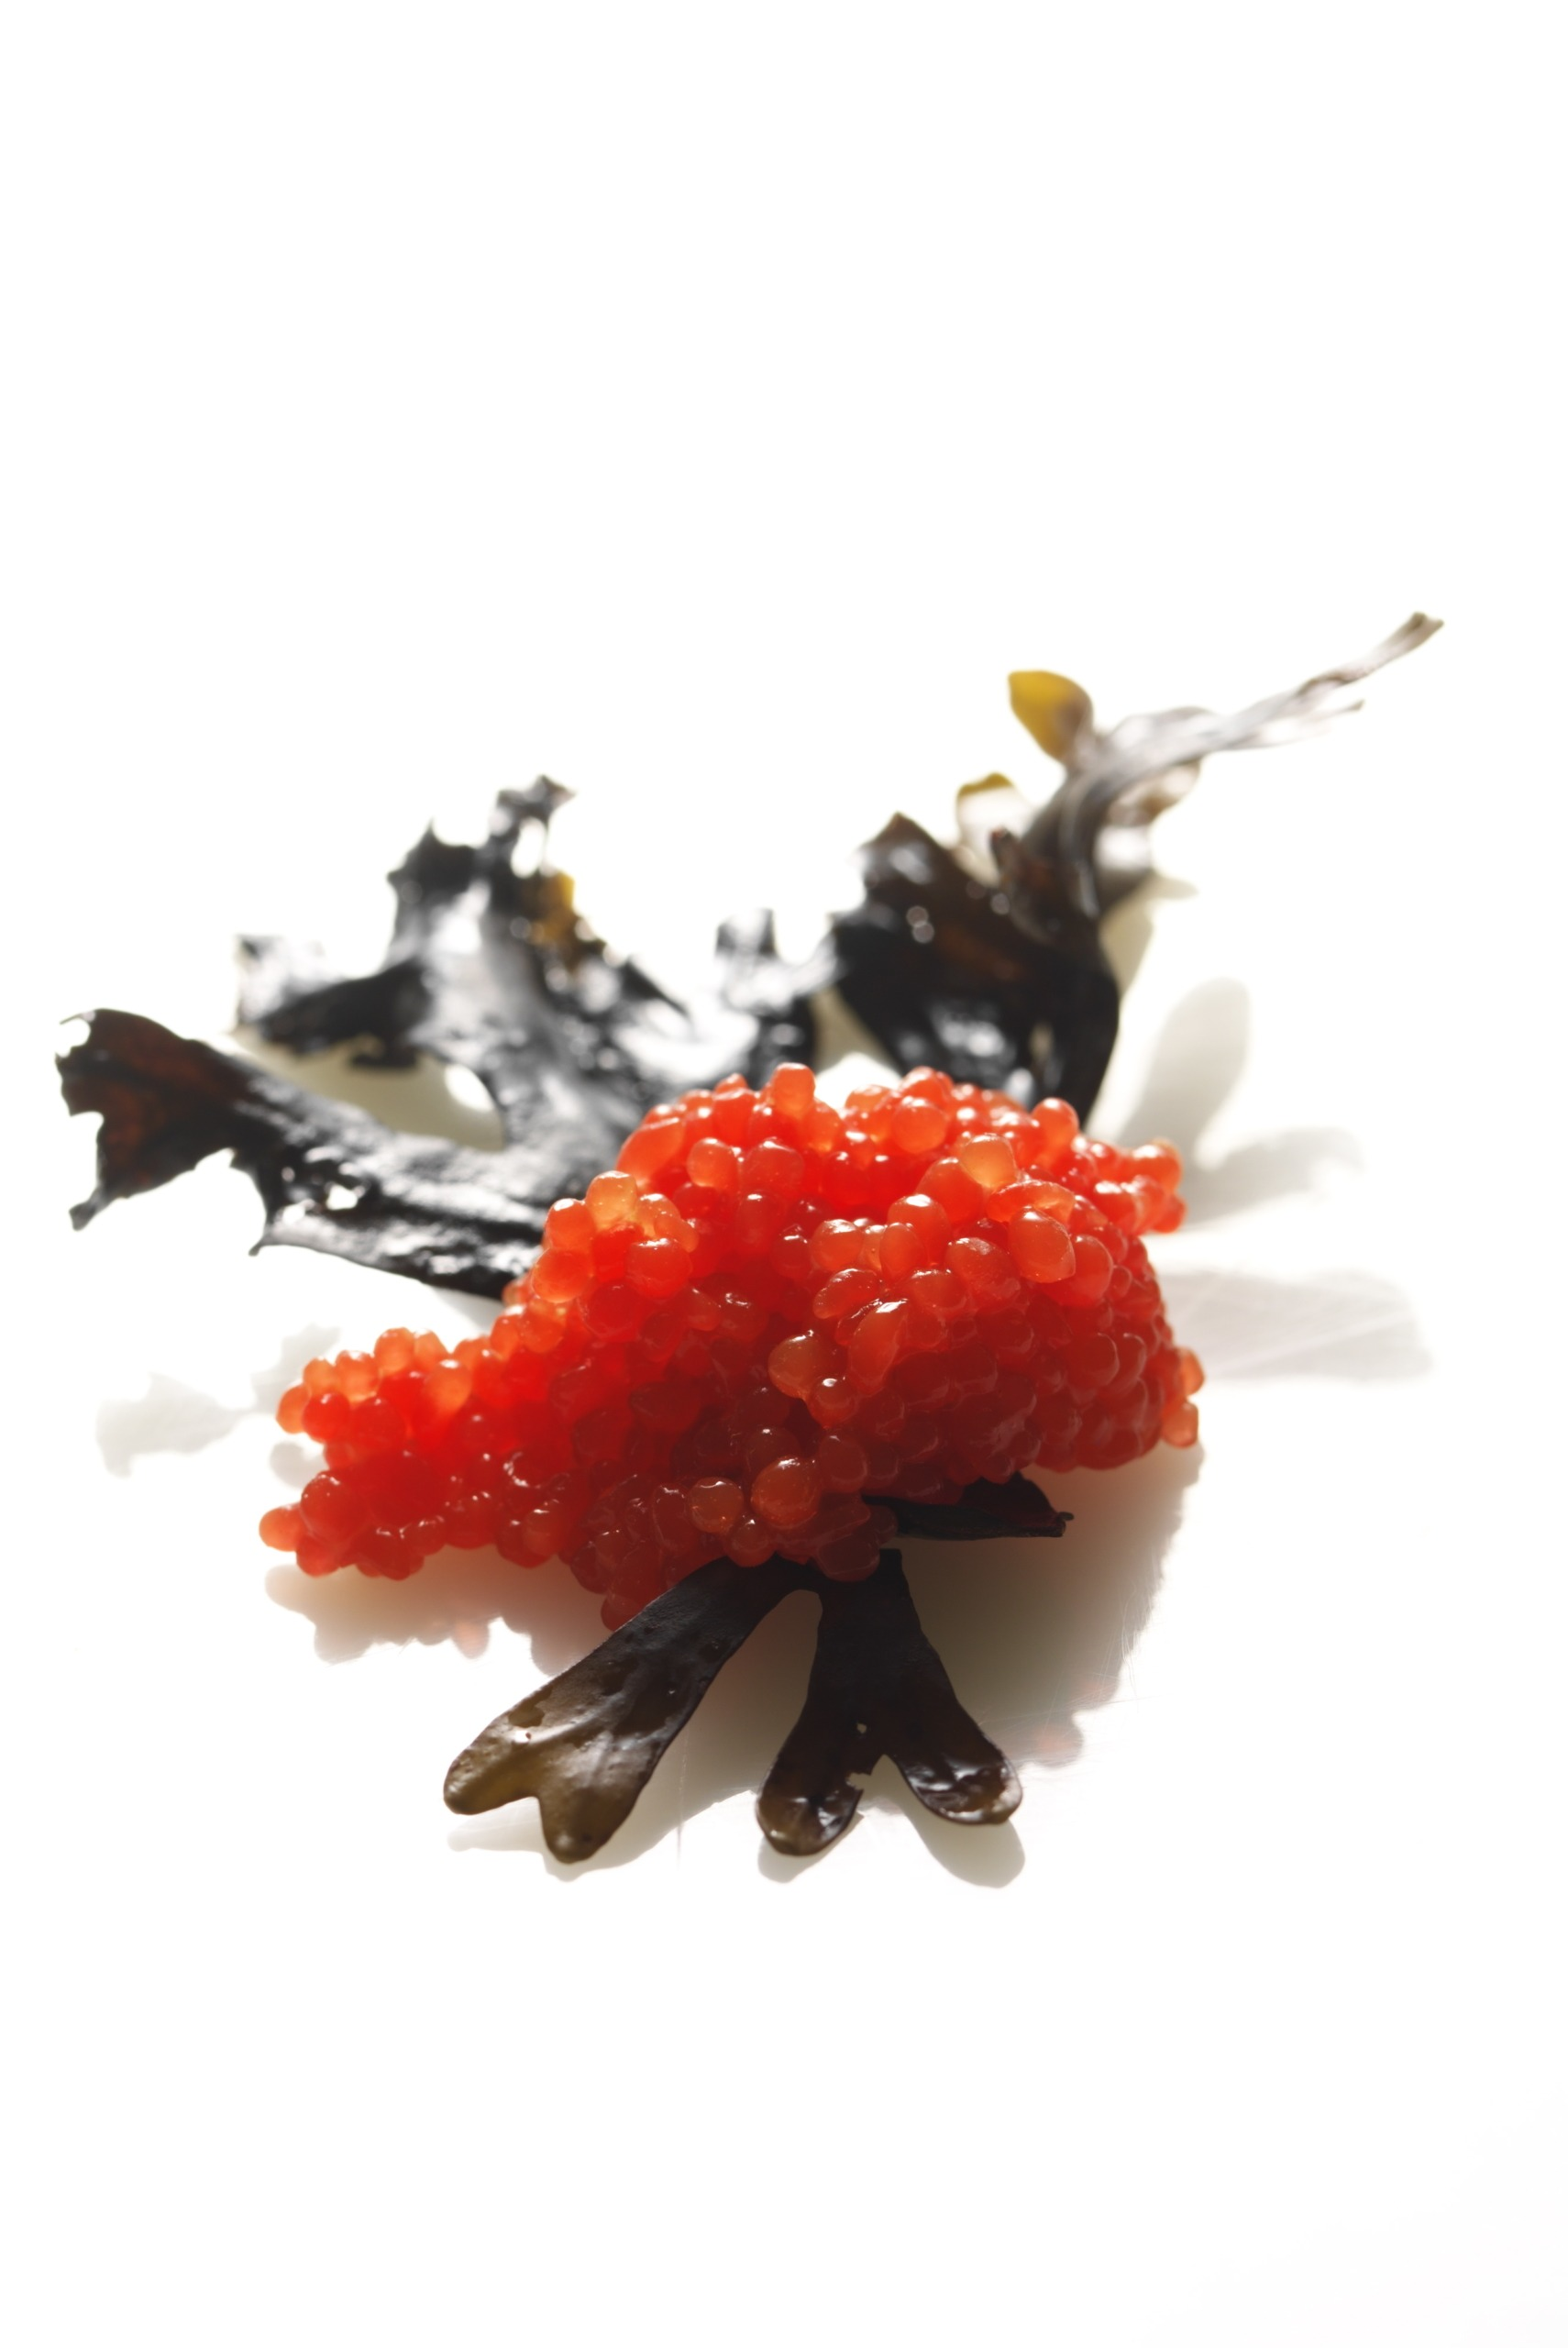 Red cavi-art - seaweed cavair - vegan red caviar